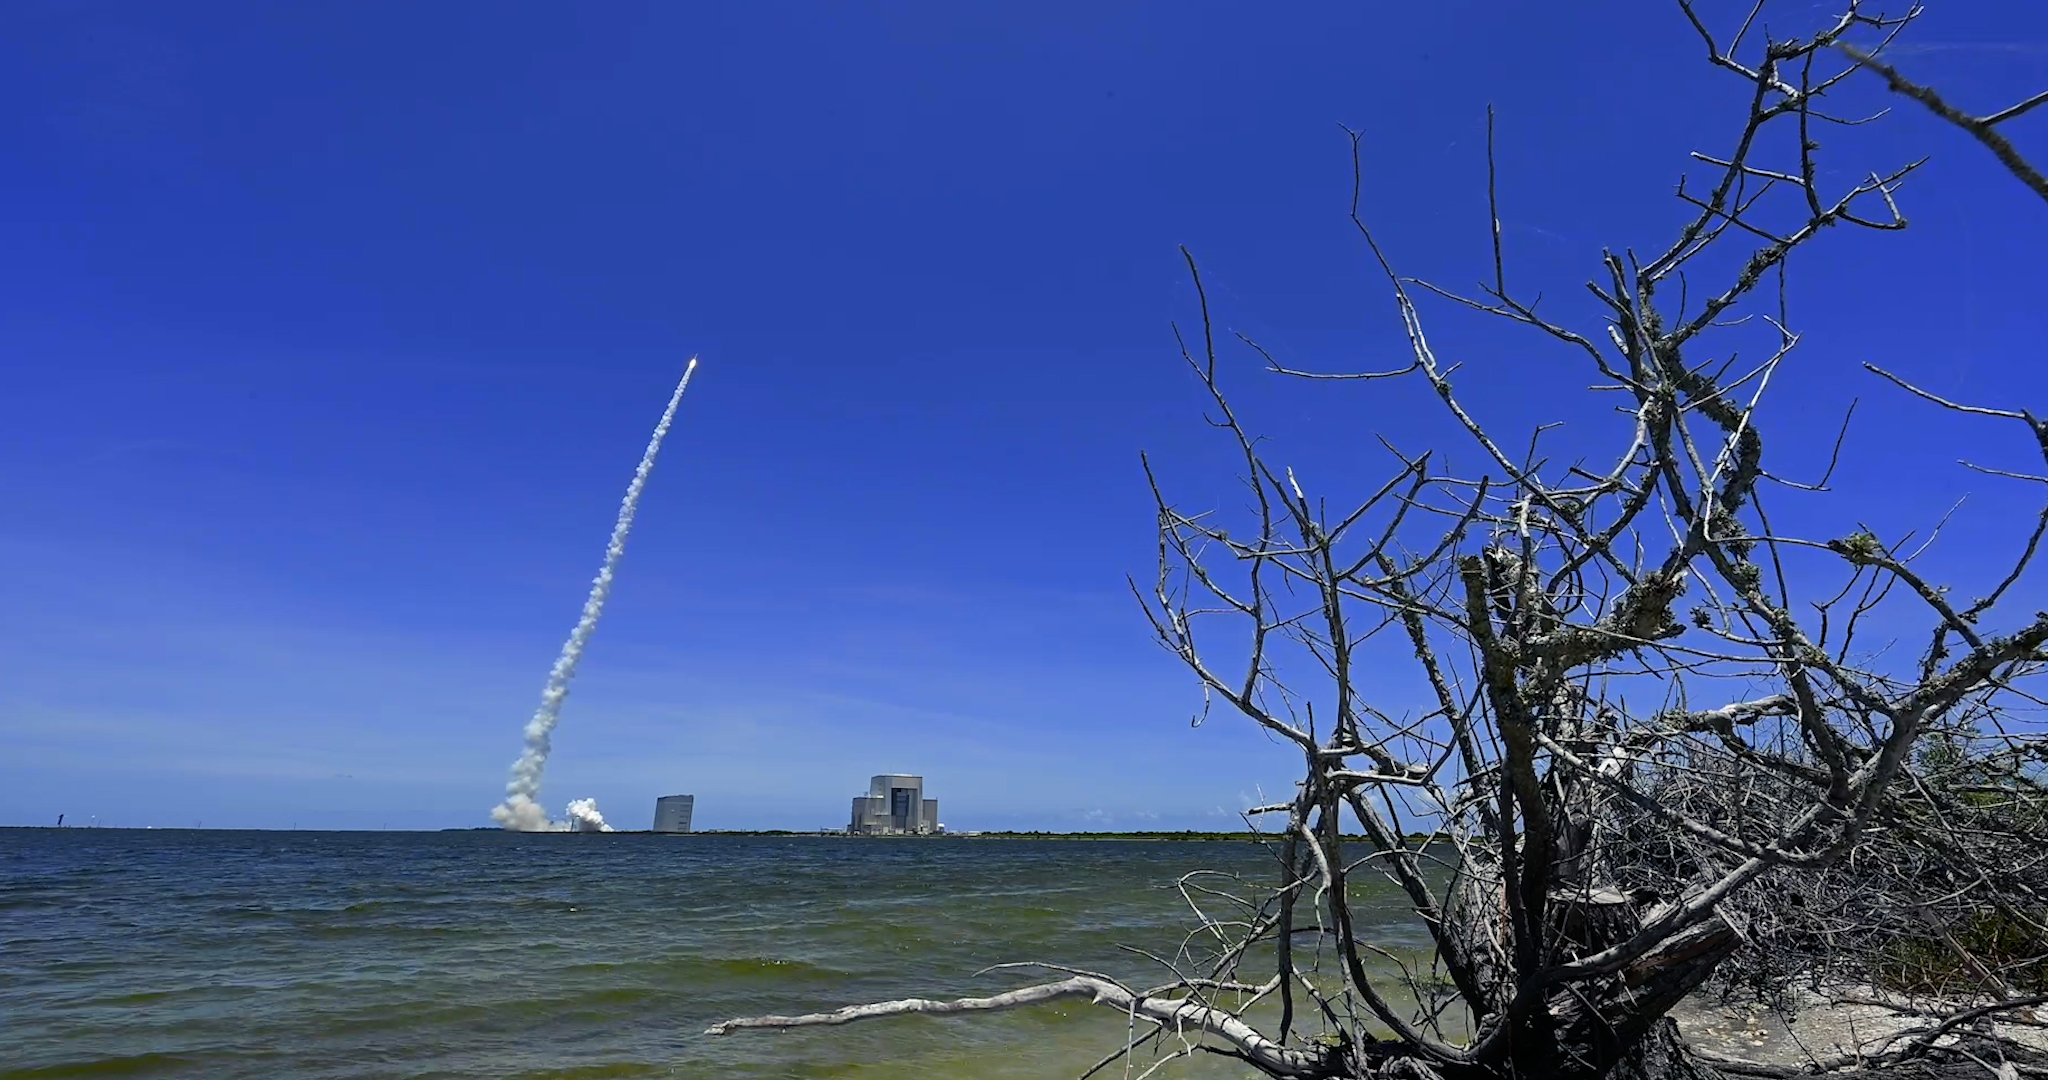 The Artemis Lunar Mission will likely launch from Cape Canaveral in the near future.